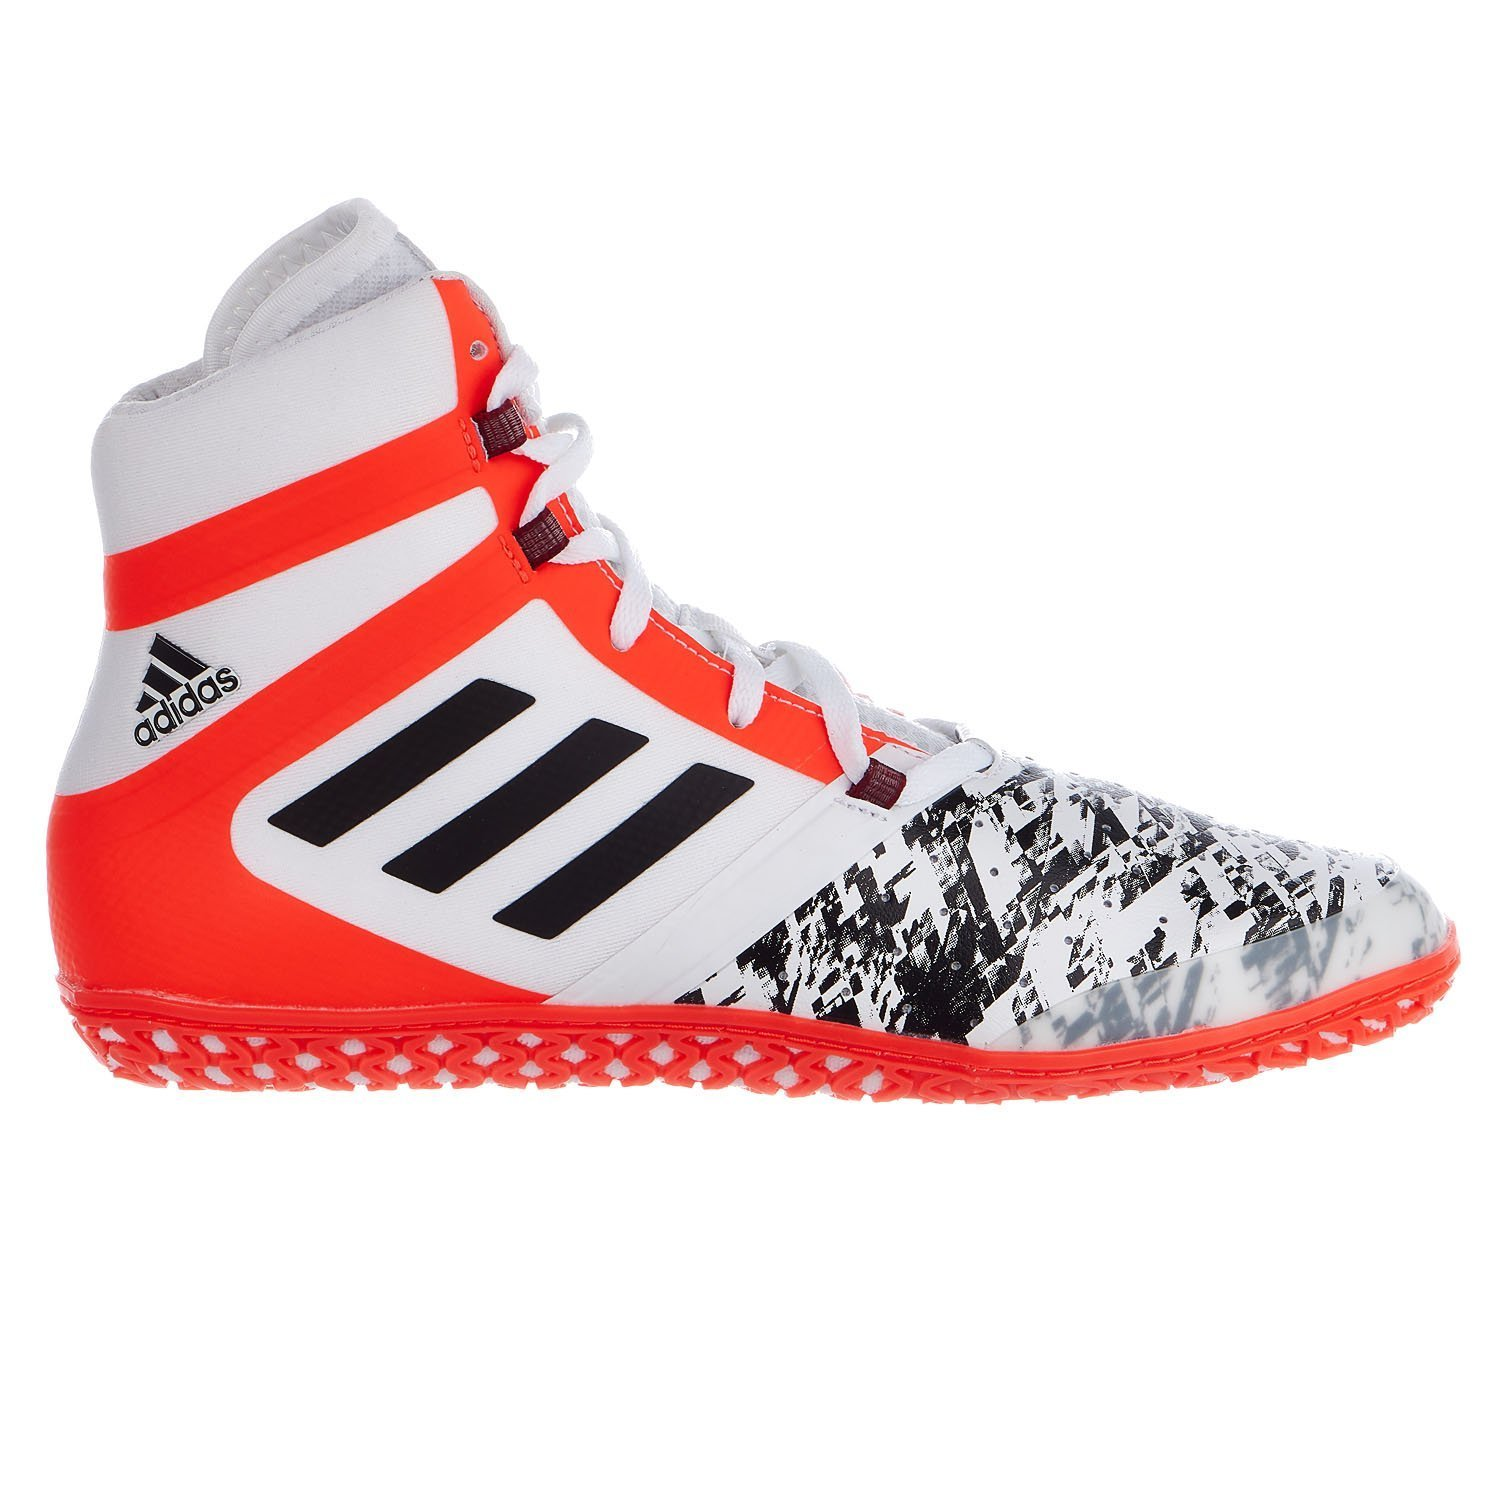 43494e4eb75 adidas Flying Impact Wrestling Shoes - SS18 Black  Amazon.co.uk  Shoes    Bags